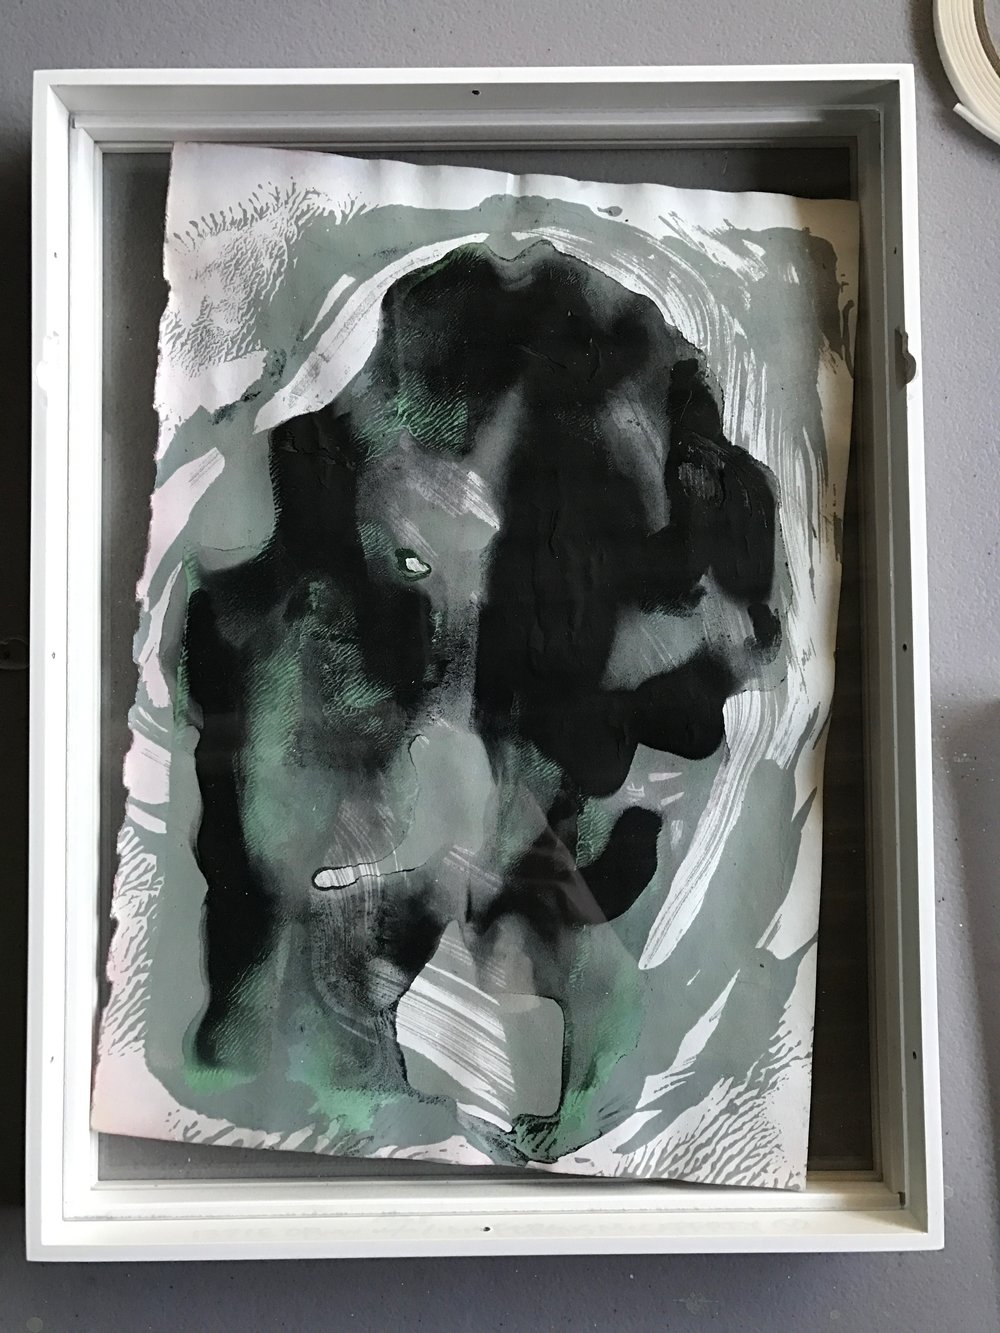 Finally getting around to framing some of these older monoprints.